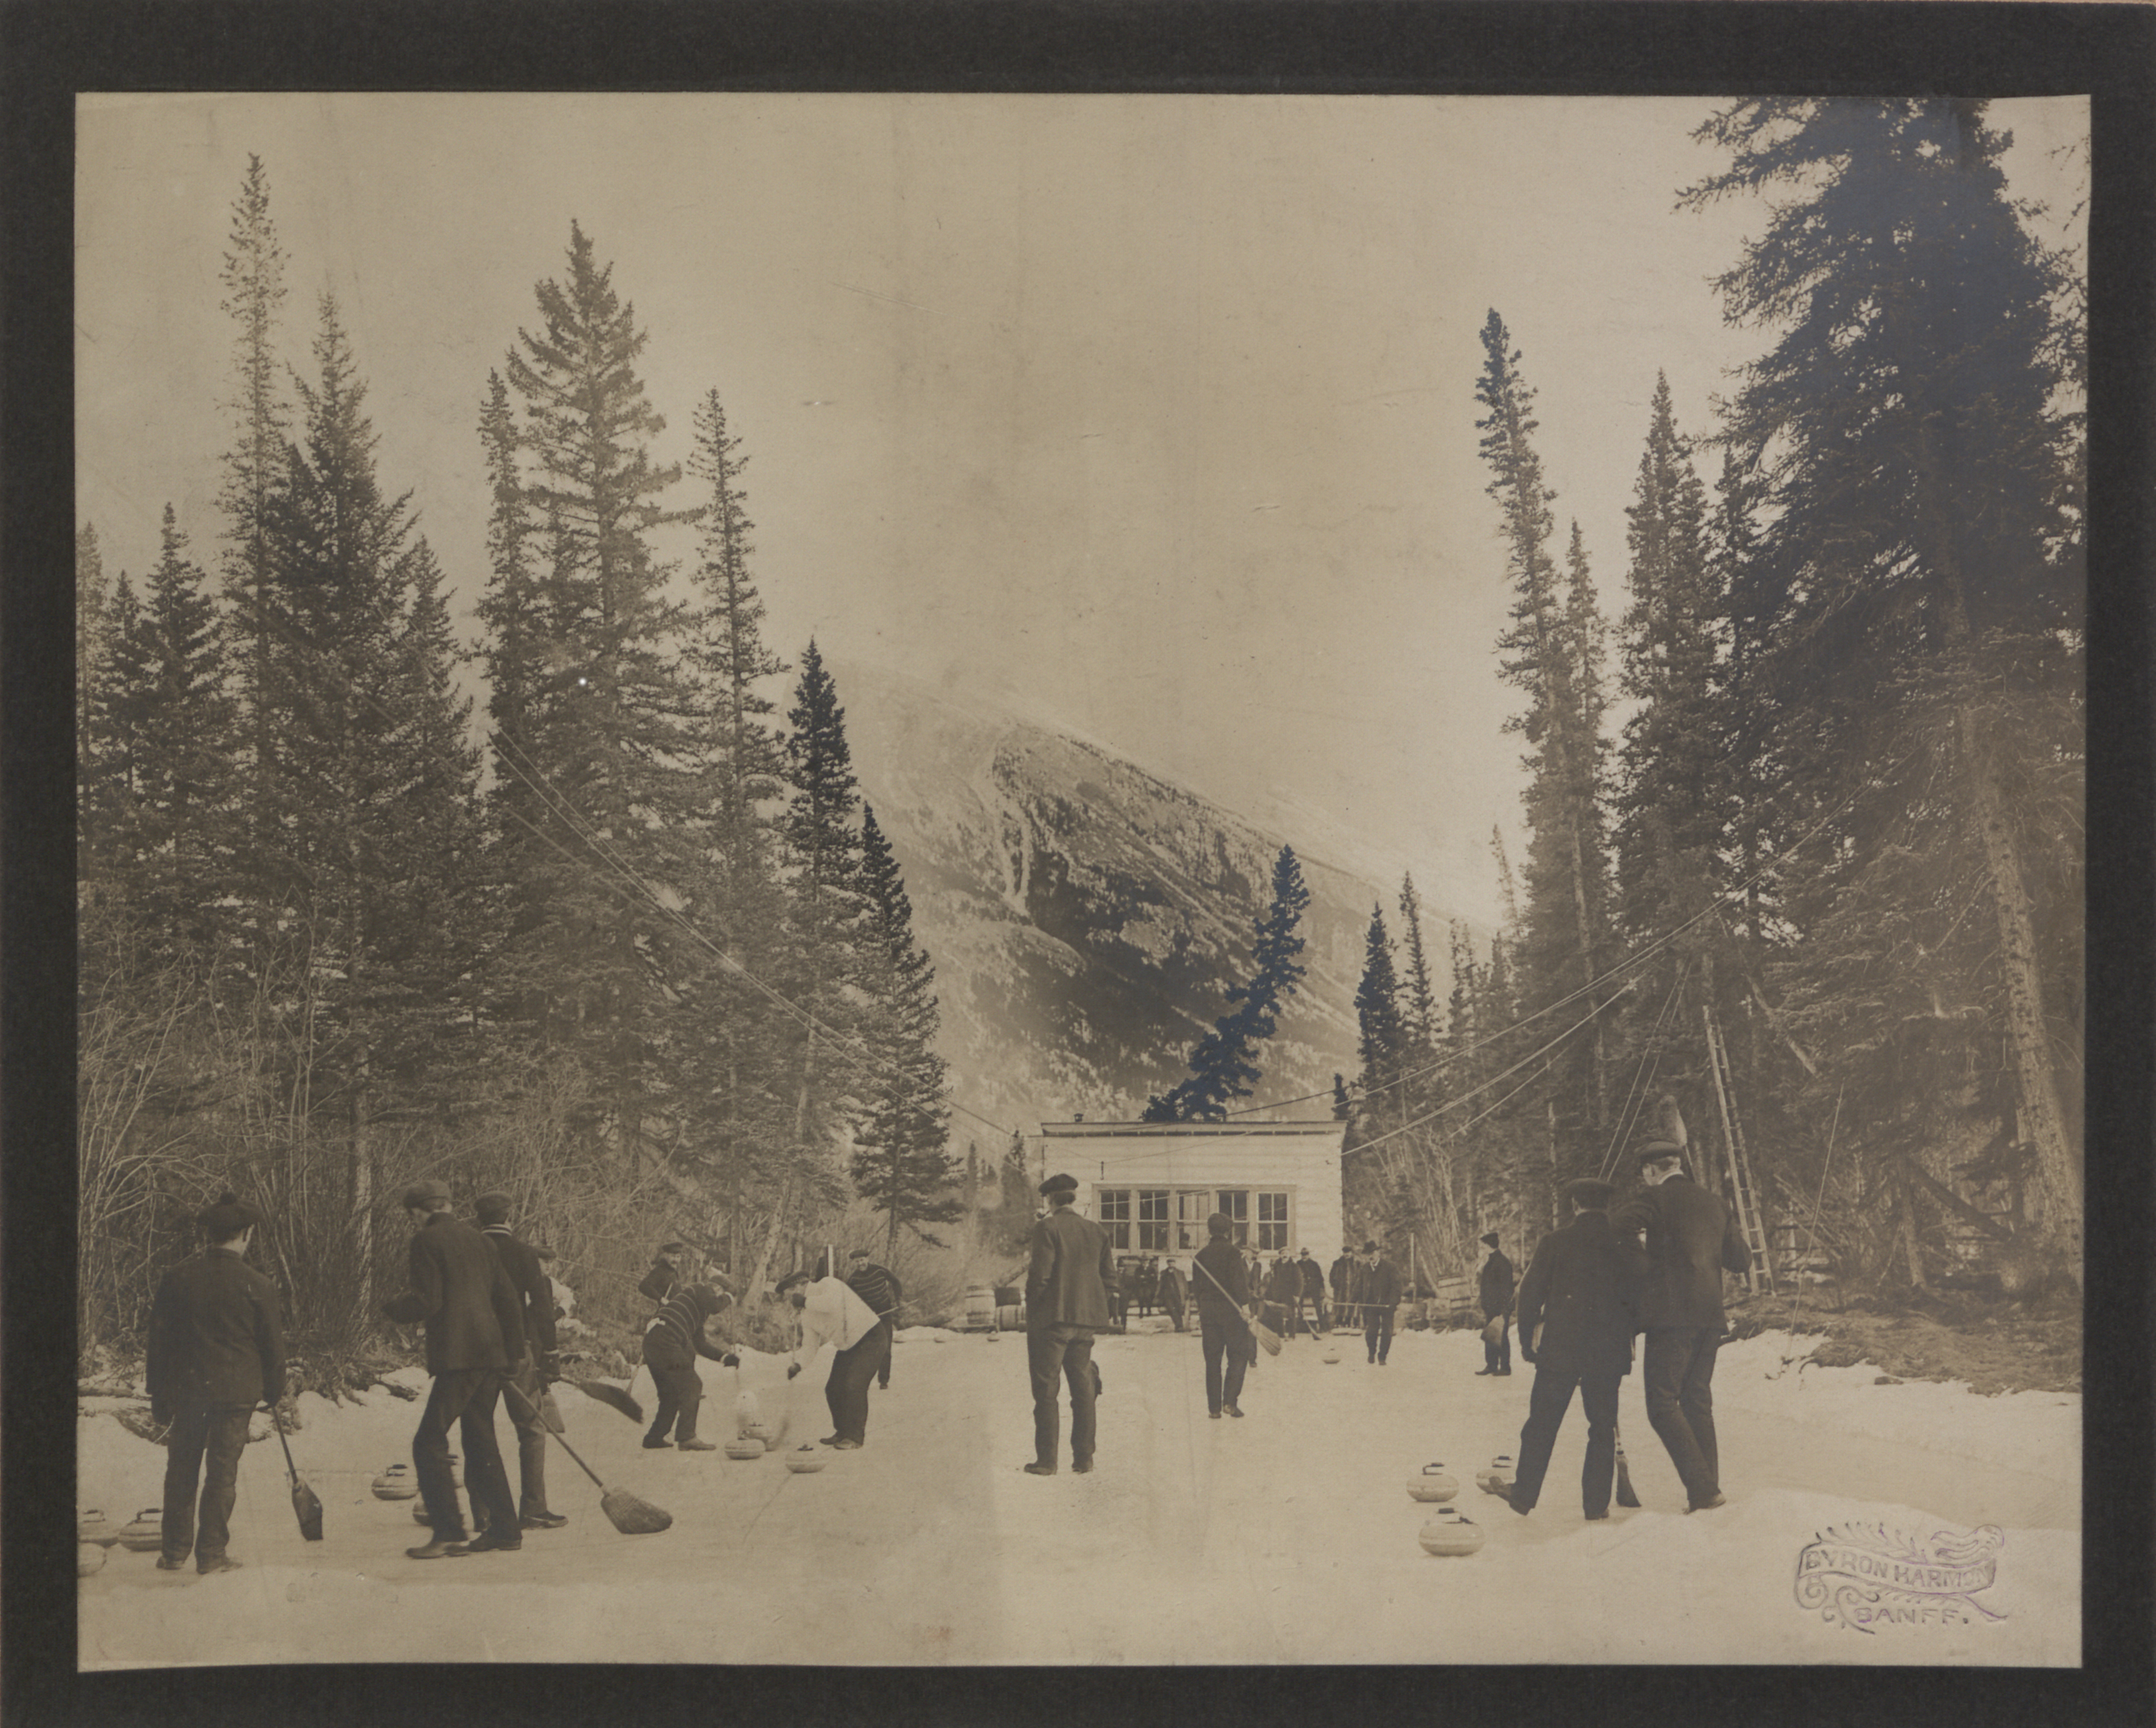 Canada Through the Lens: Curling at Banff (HS85-10-16920)